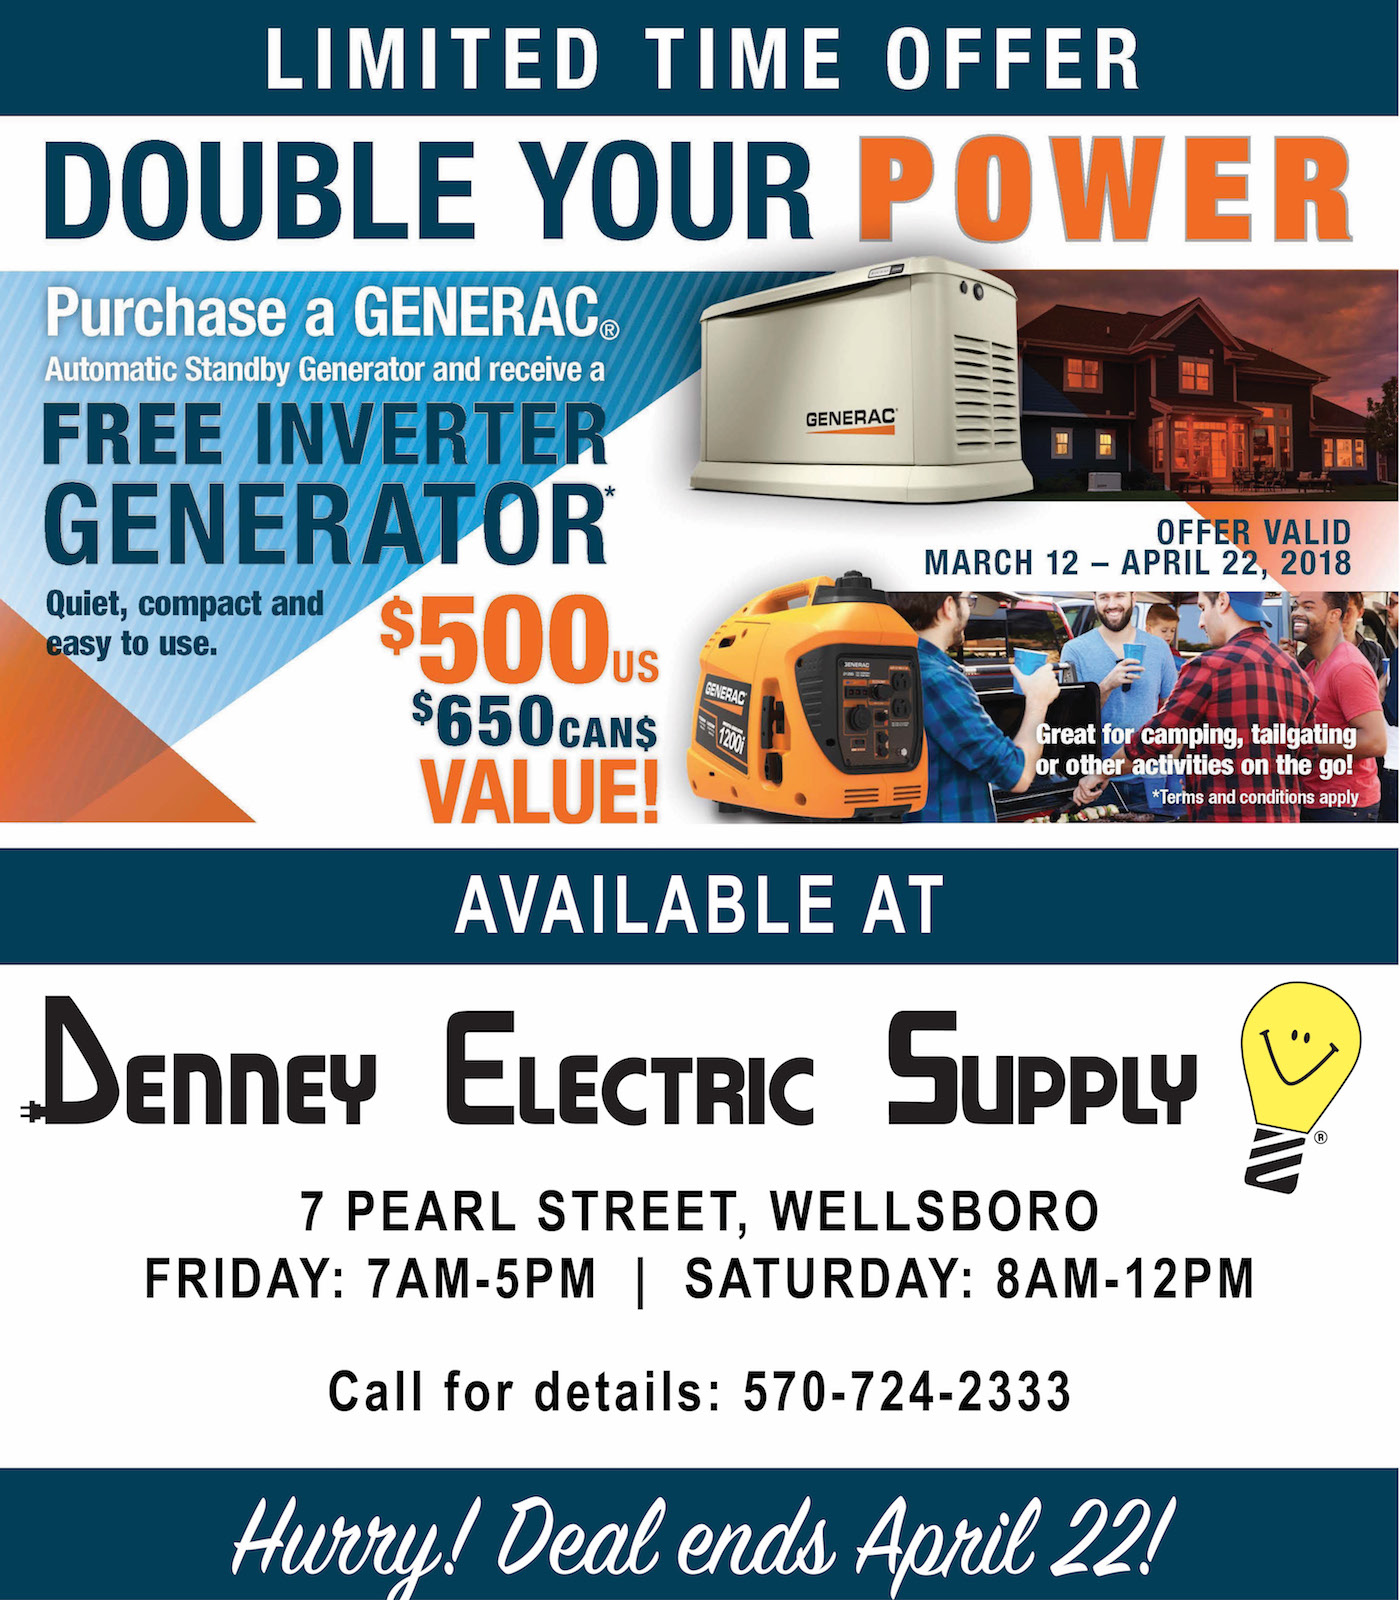 Denny Electric, Wellsboro, PA